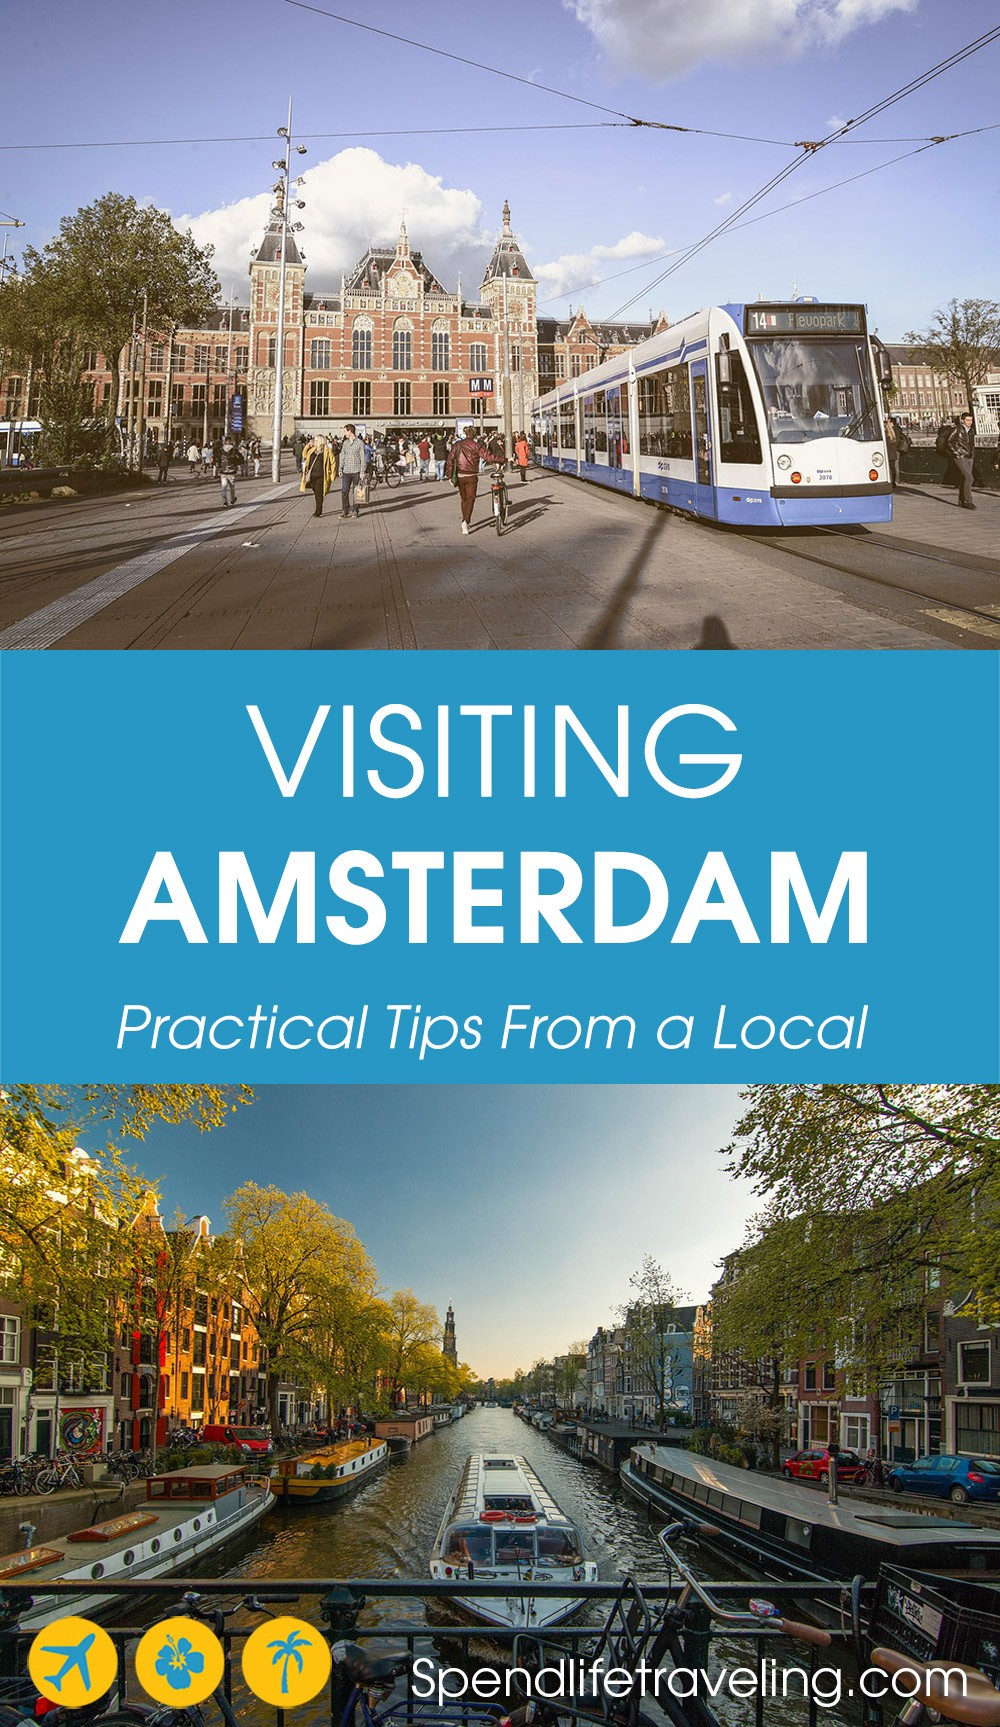 Looking for other Amsterdam tips besides the obvious Red Light District, Van Gogh Museum, etc? Then check out these local tips for things to do in #Amsterdam! #citybreak #traveltips #Holland